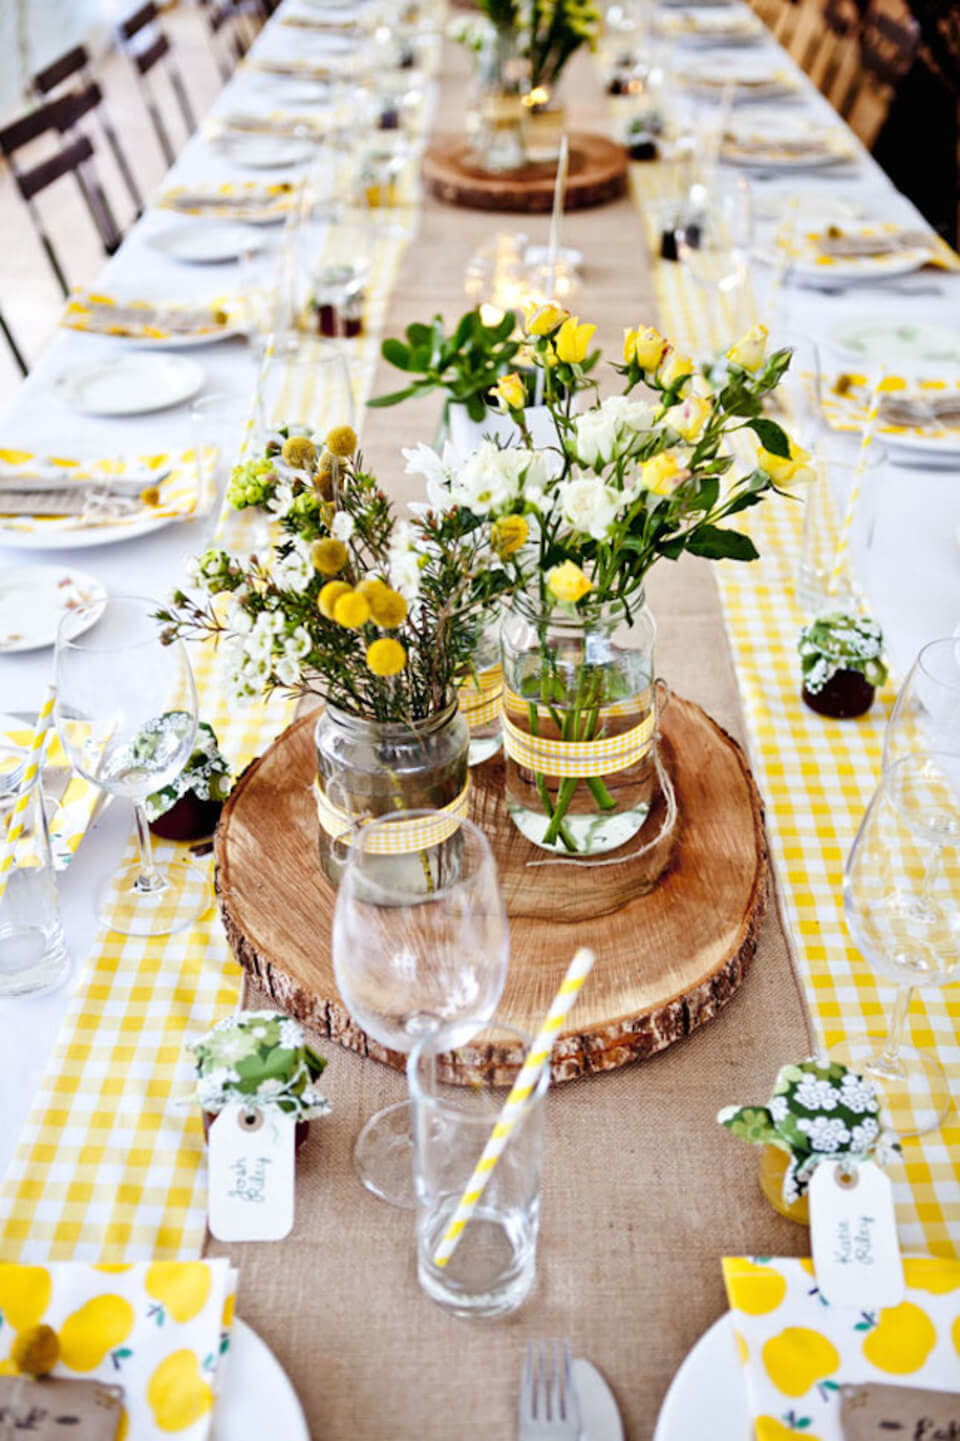 Cheerful Meadow Themed Table Decor With Wooden Stump Plates